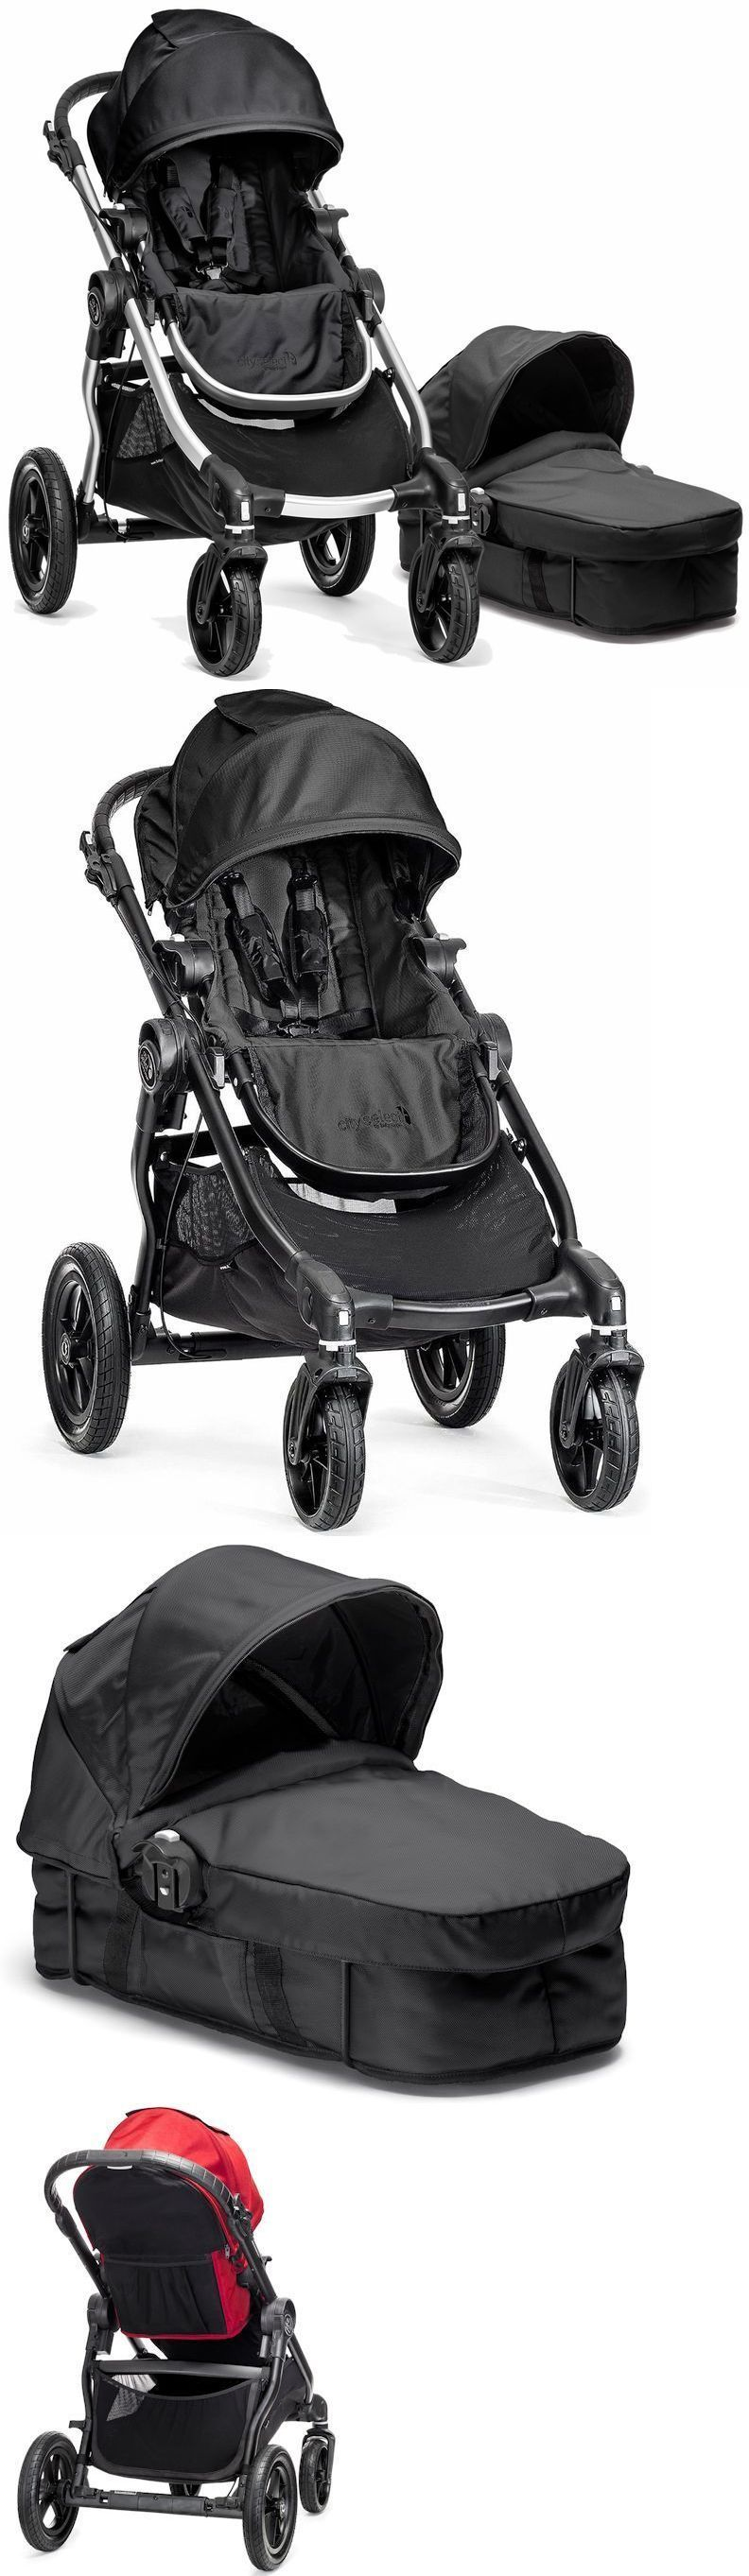 Other Baby Gear Baby Jogger City Select Stroller yx W Bassinet Pram System Travel